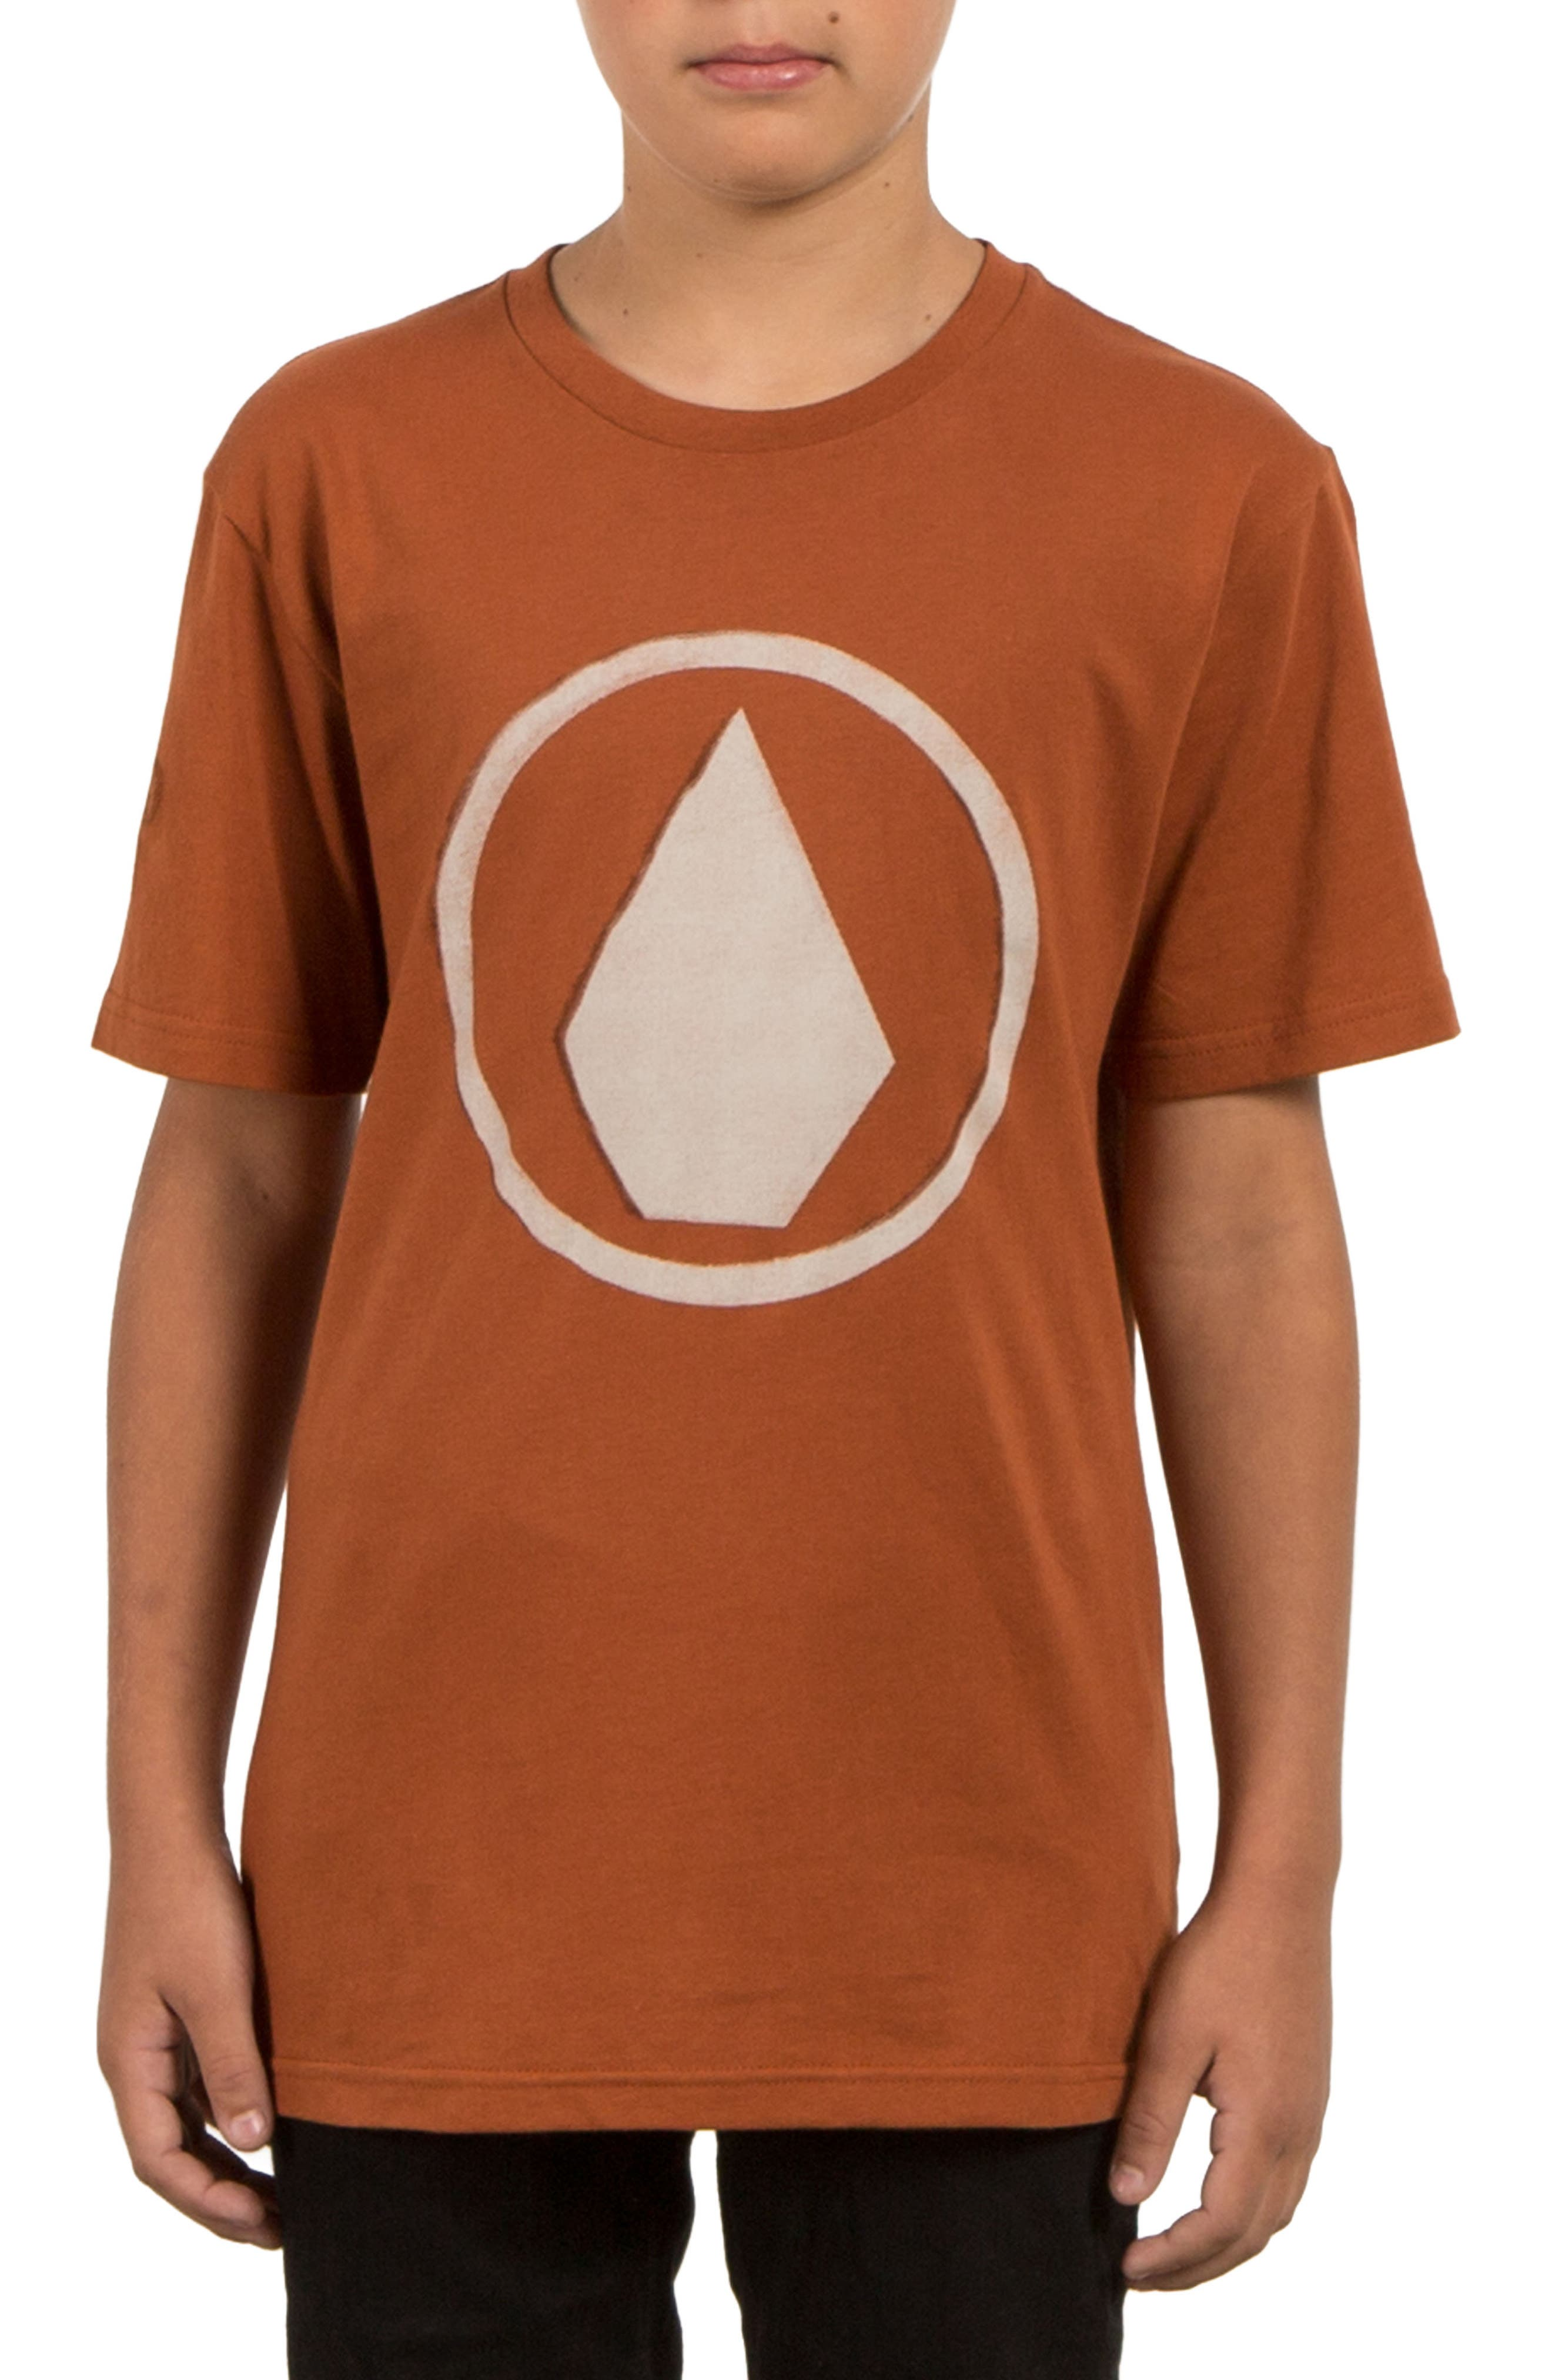 Alternate Image 1 Selected - Volcom Burnt Graphic T-Shirt (Big Boys)